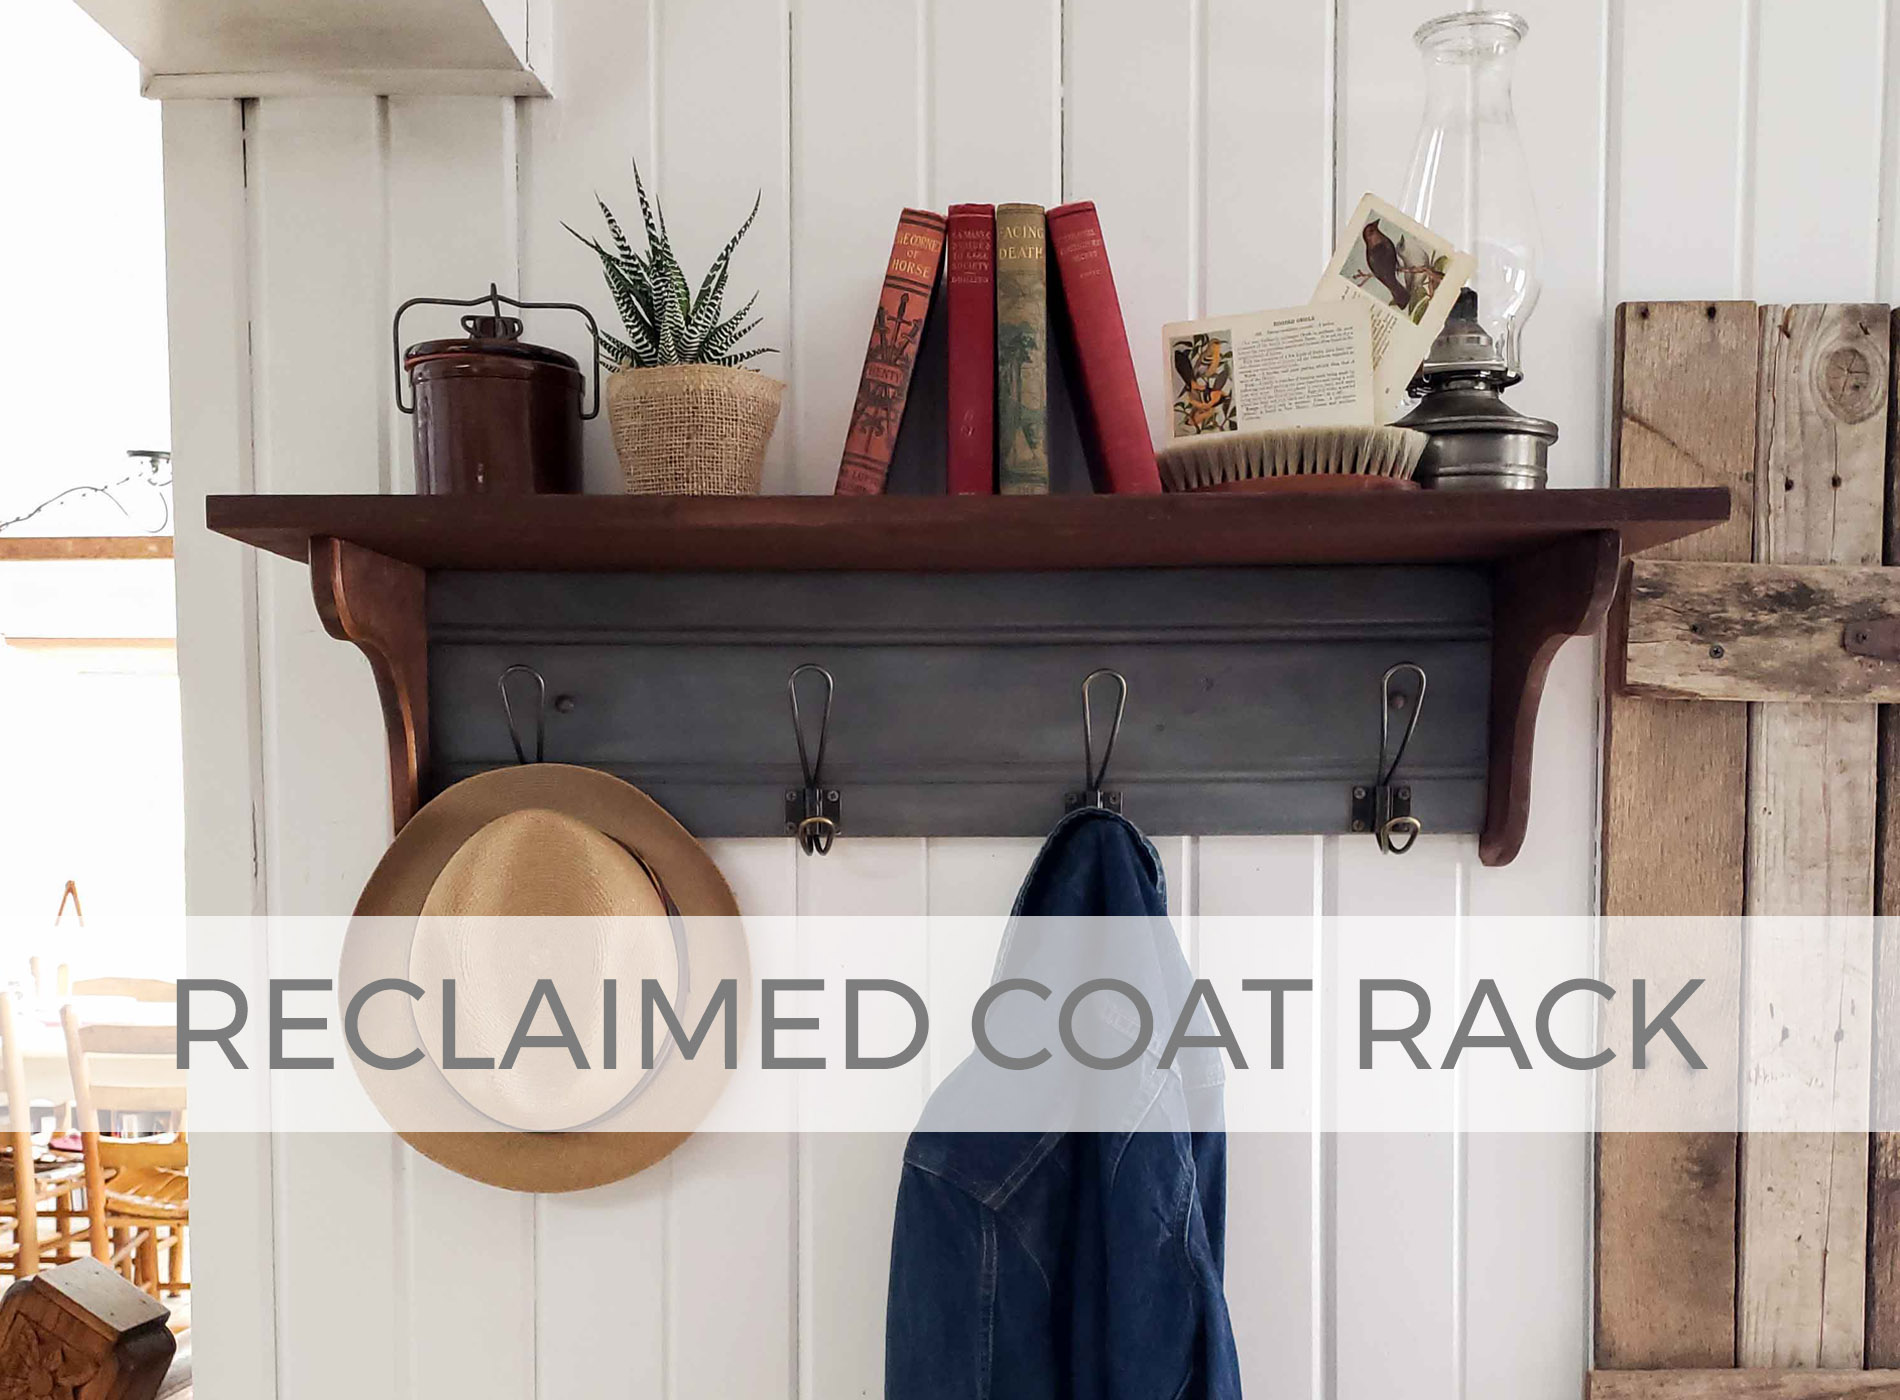 Reclaimed Coat Rack by Larissa of Prodigal Pieces | prodigalpieces.com